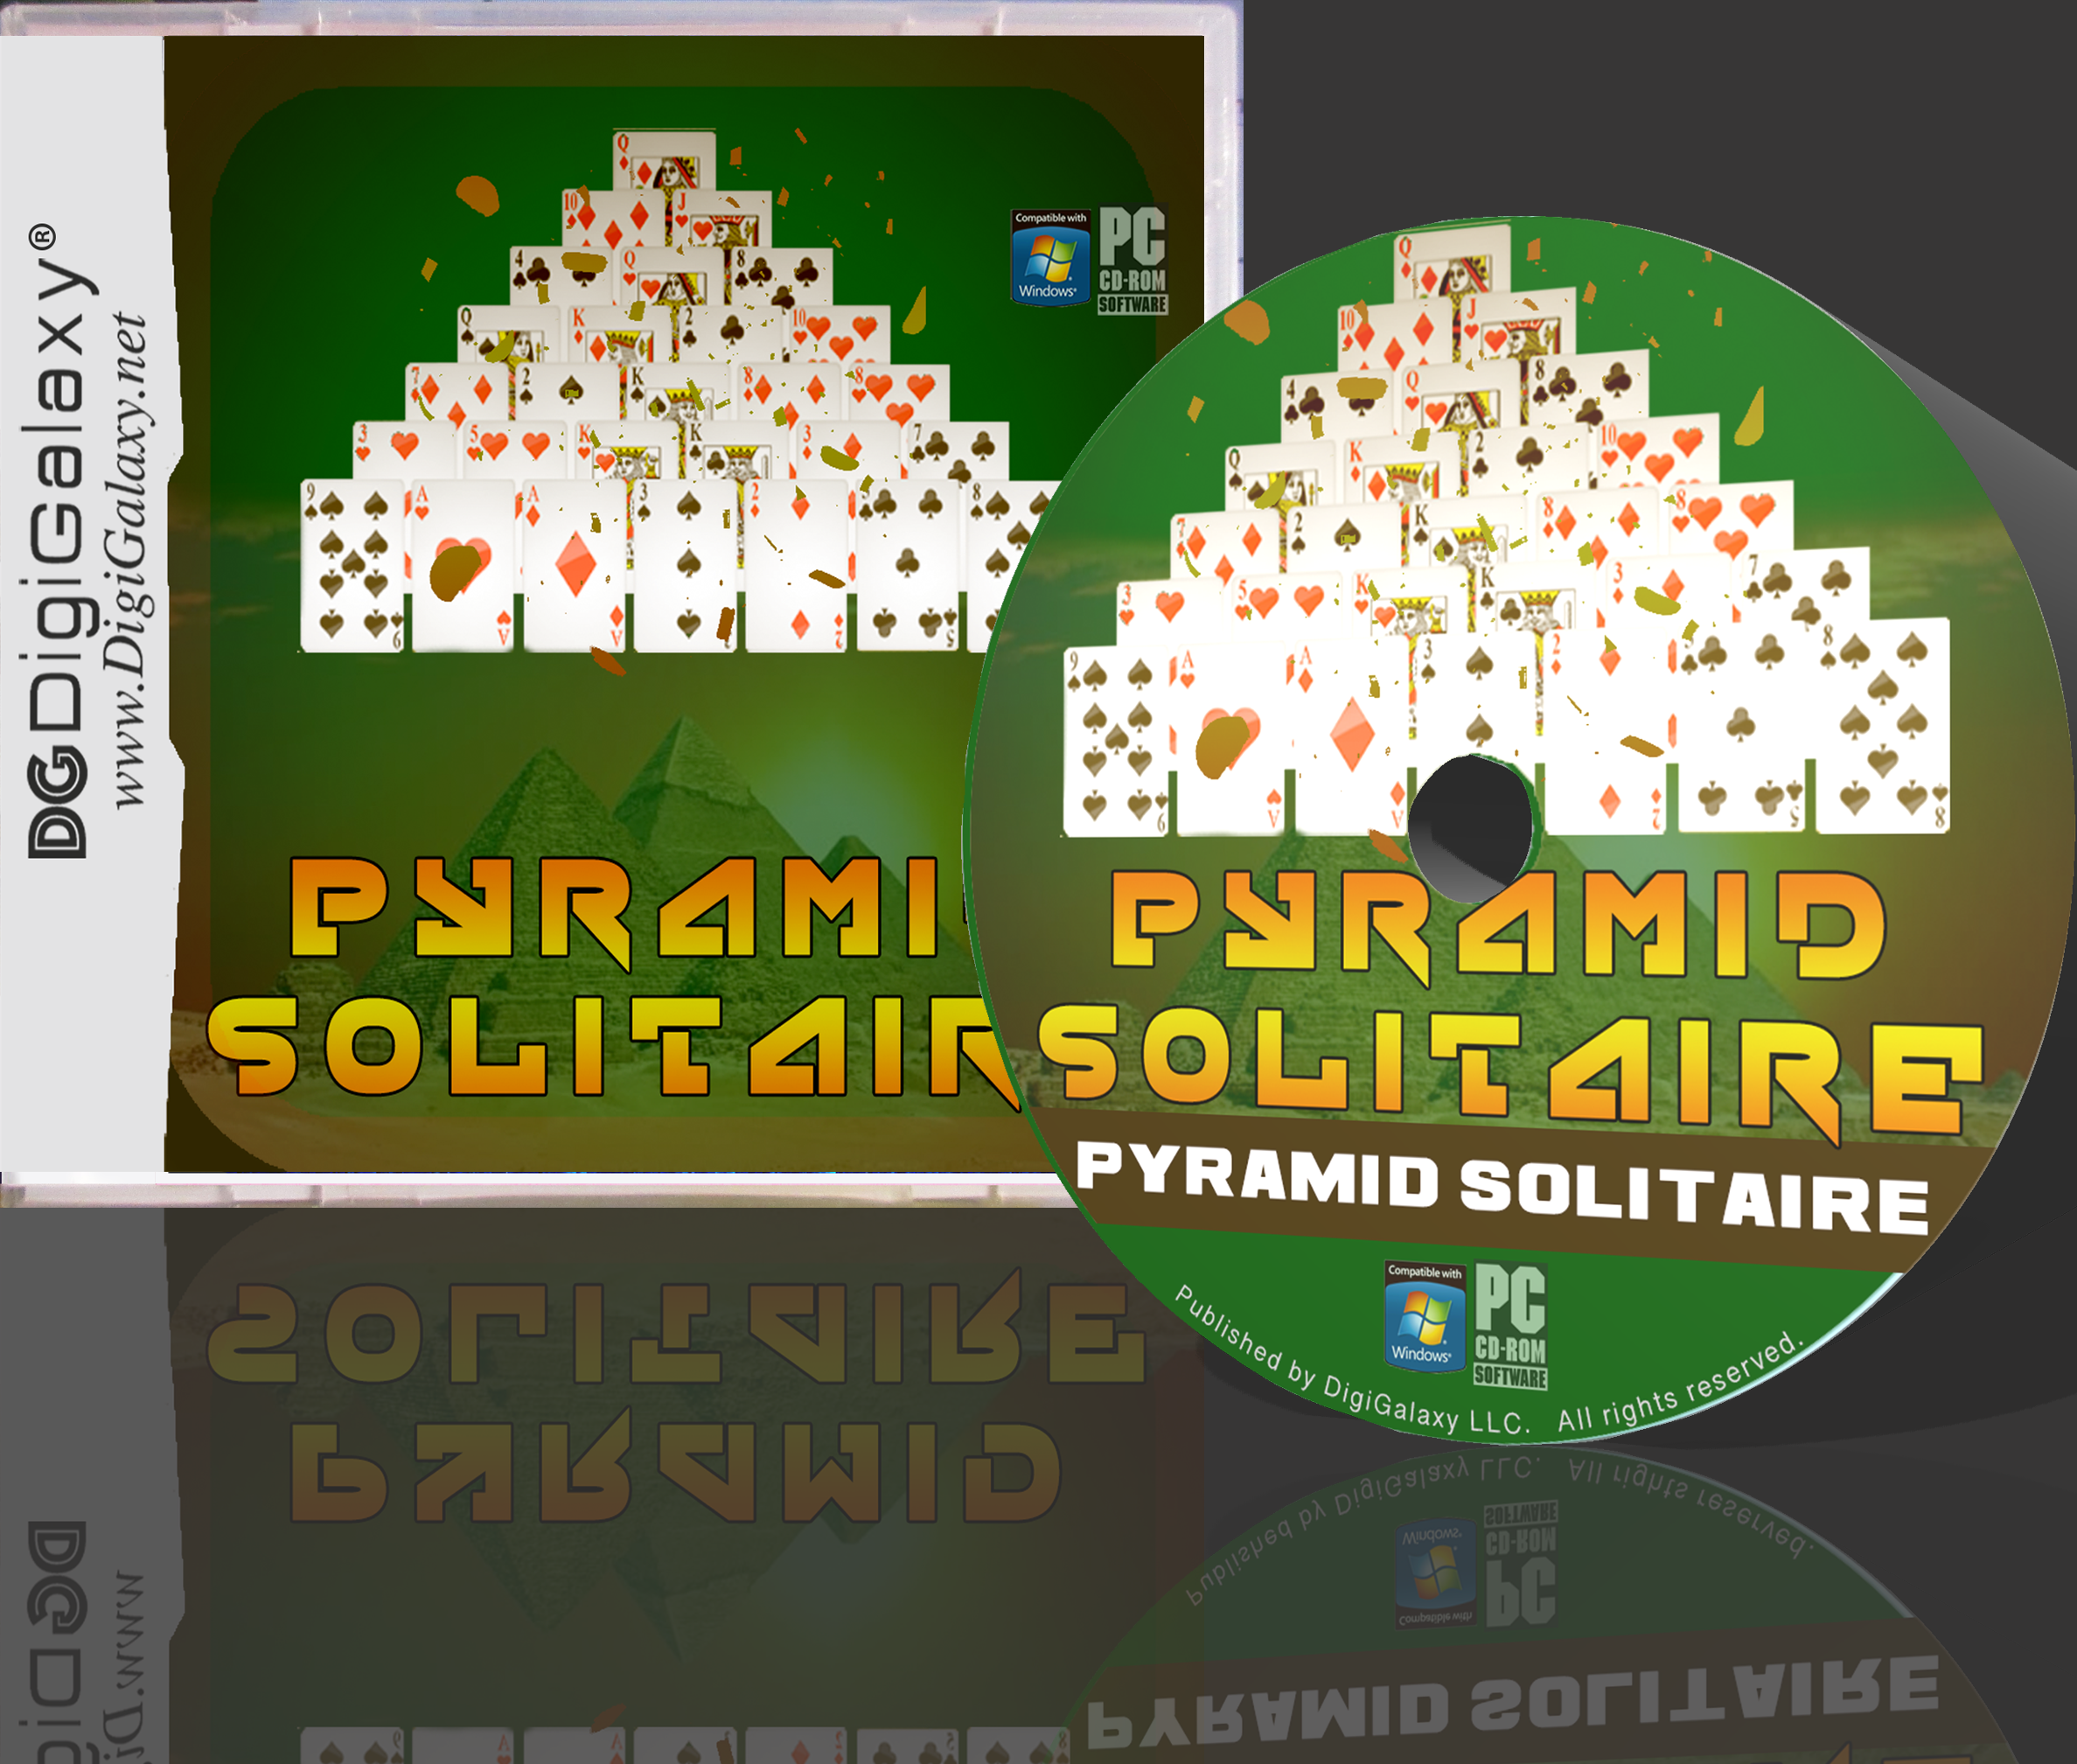 Pyramid Solitaire Pyramid solitaire, Solitaire card game